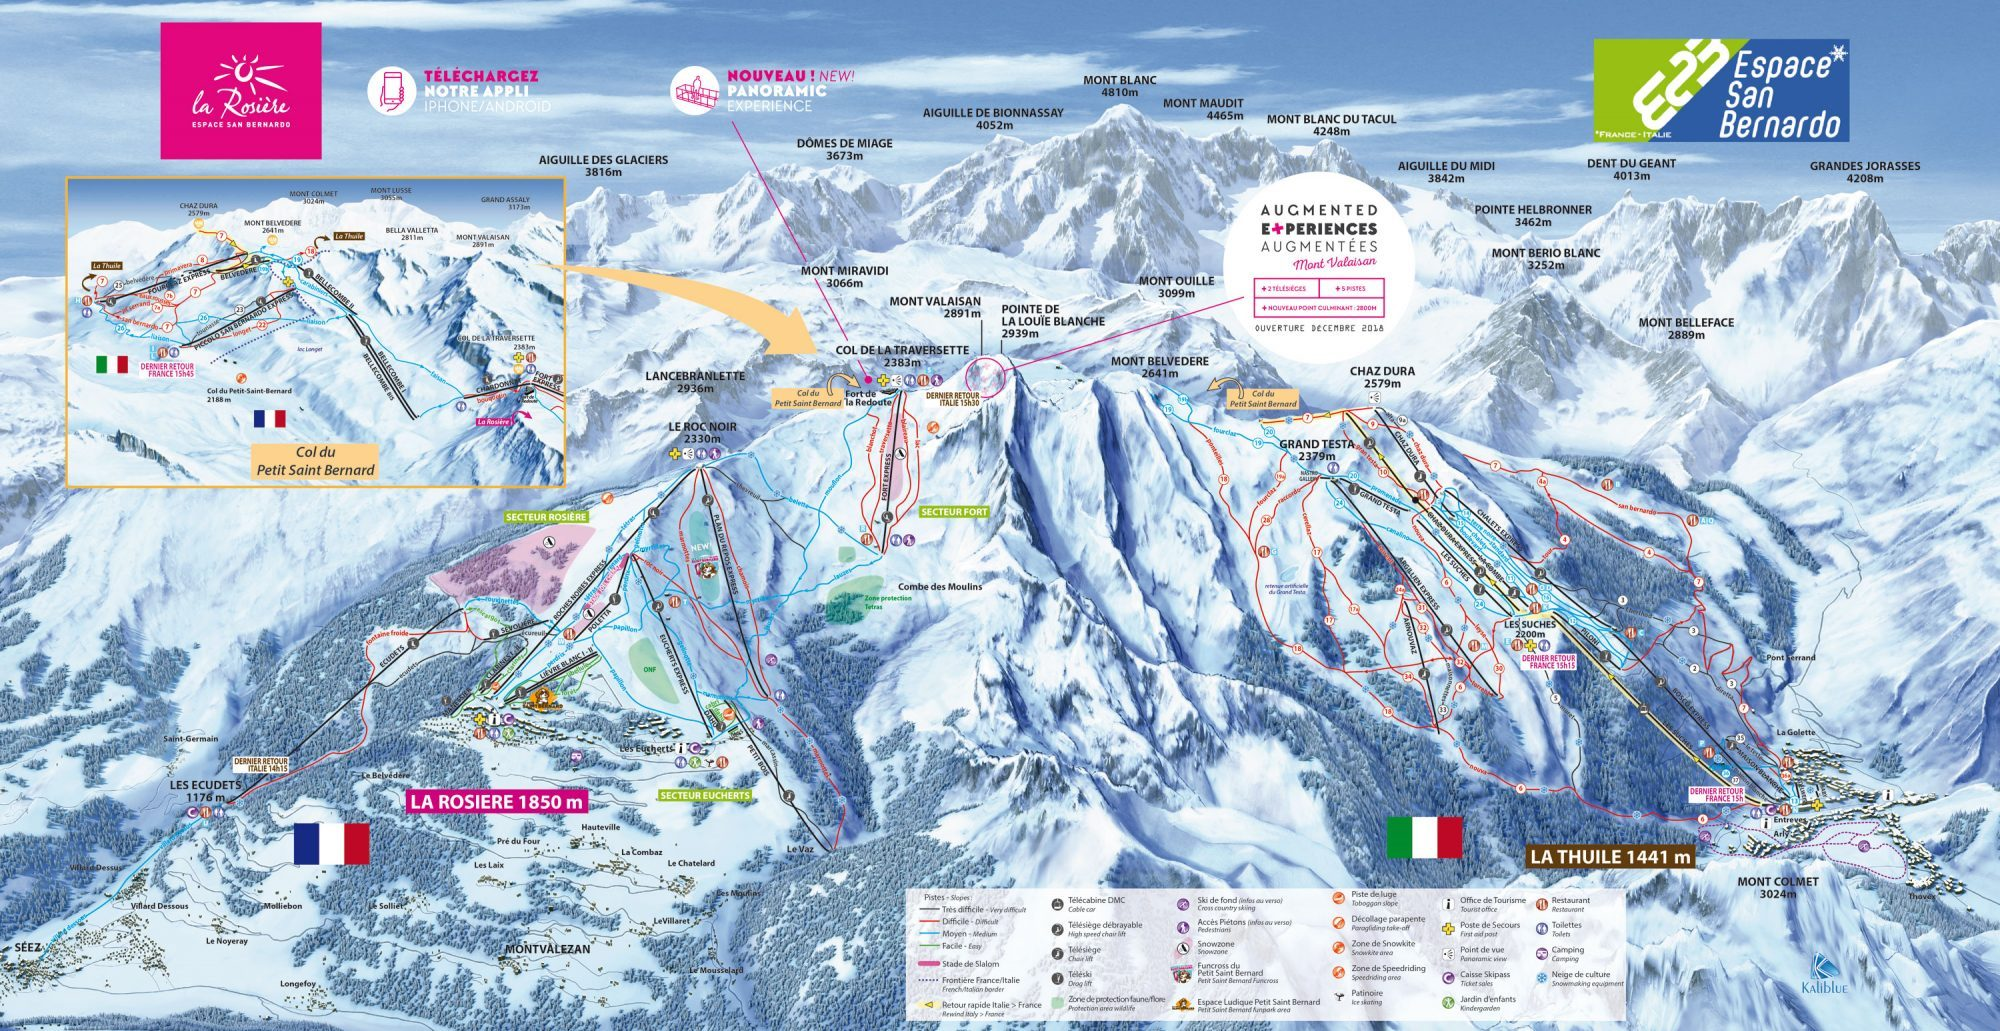 Work is underway to open the Petit St Bernard Pass – up to 7 meters of snow. Ski Map of La Rosière and La Thuile.